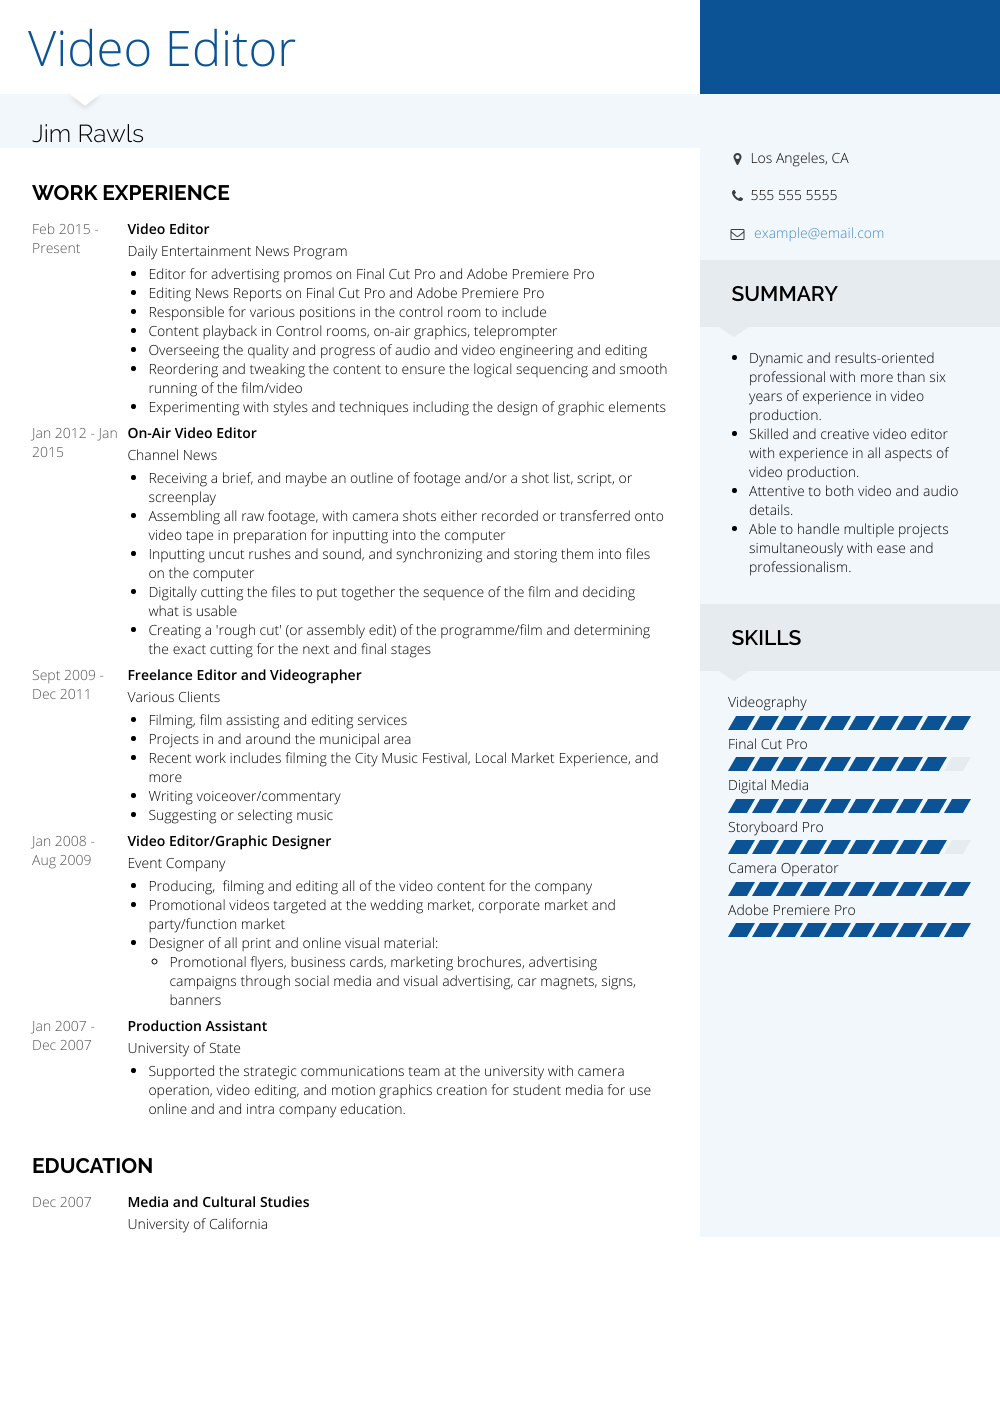 Video Editor Resume Sample and Template